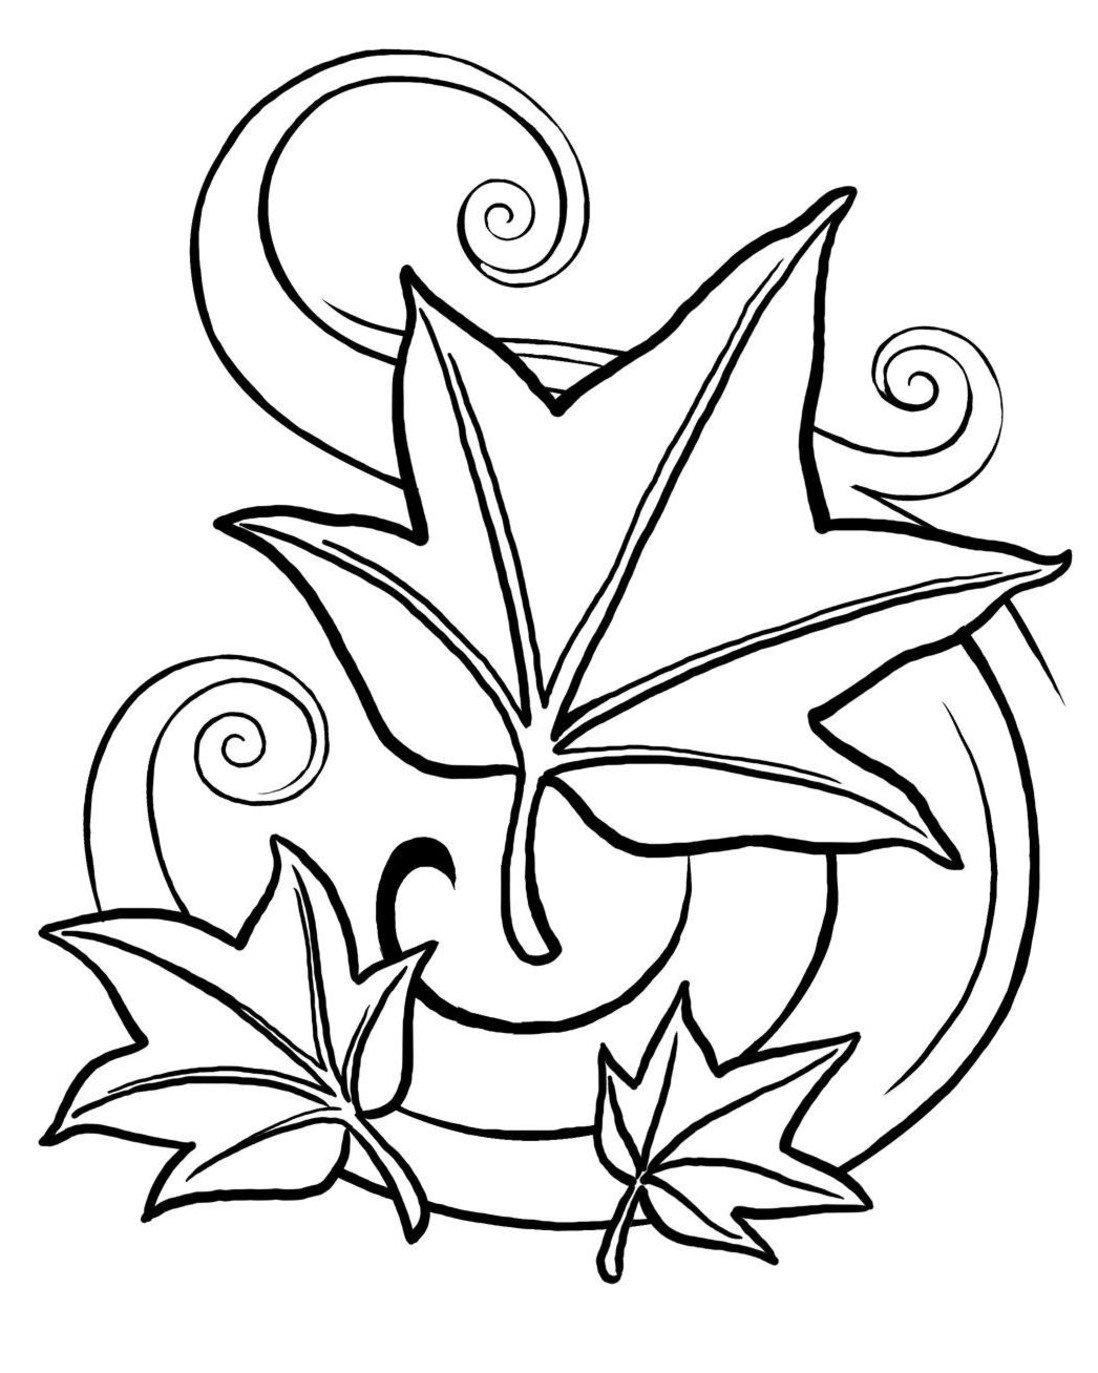 free fall coloring pages coloring club anadarko community library fall pages coloring free